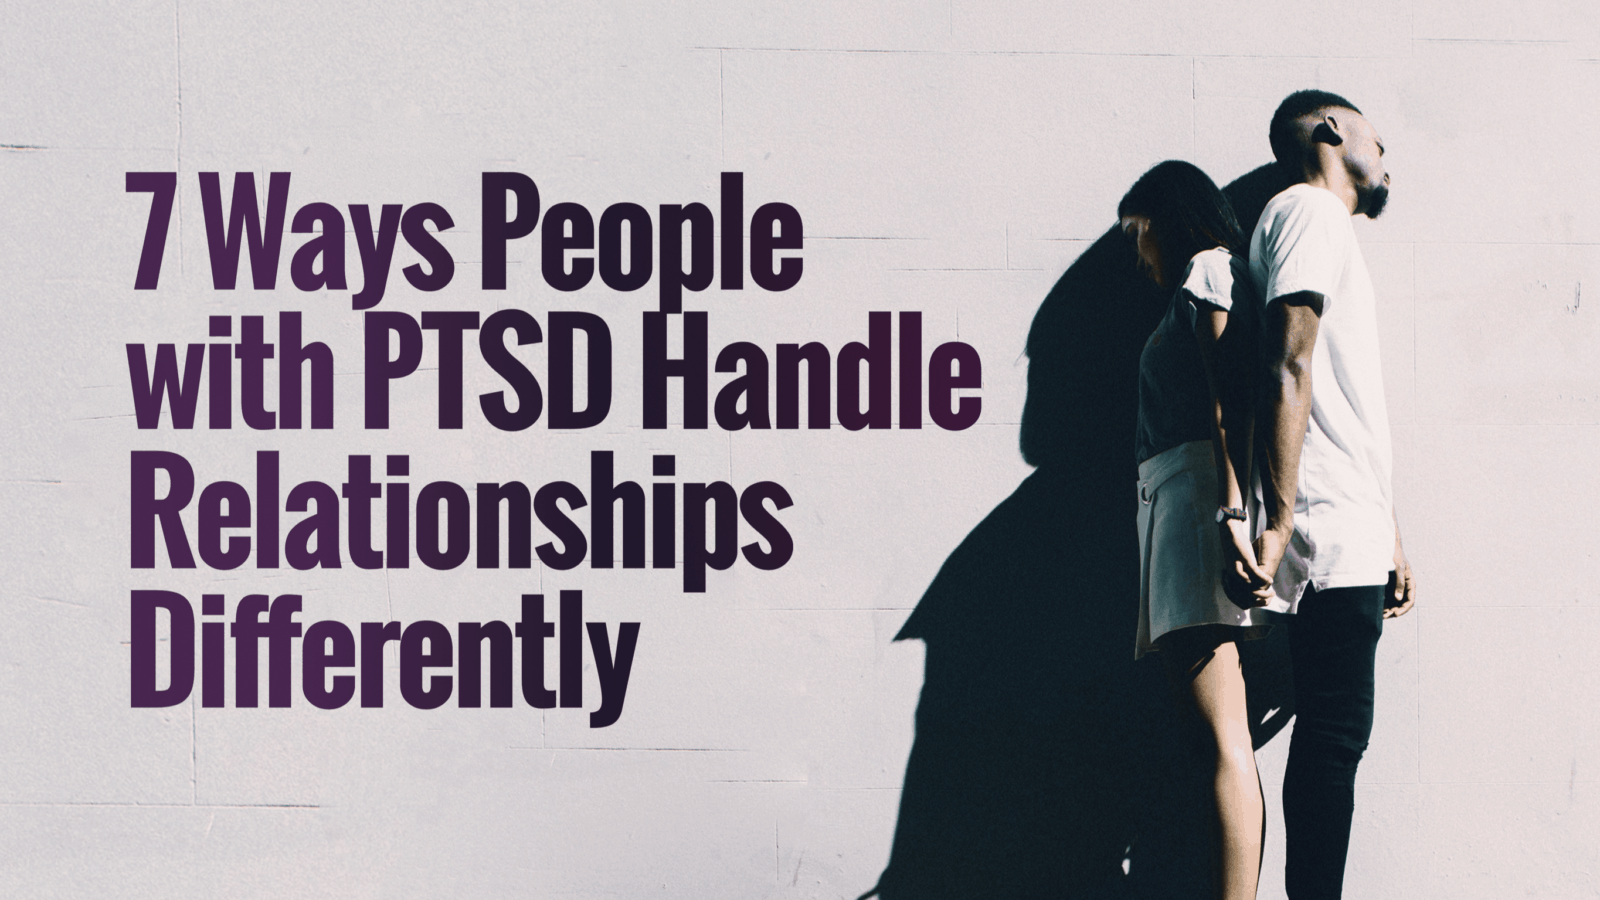 ptsd and relationships